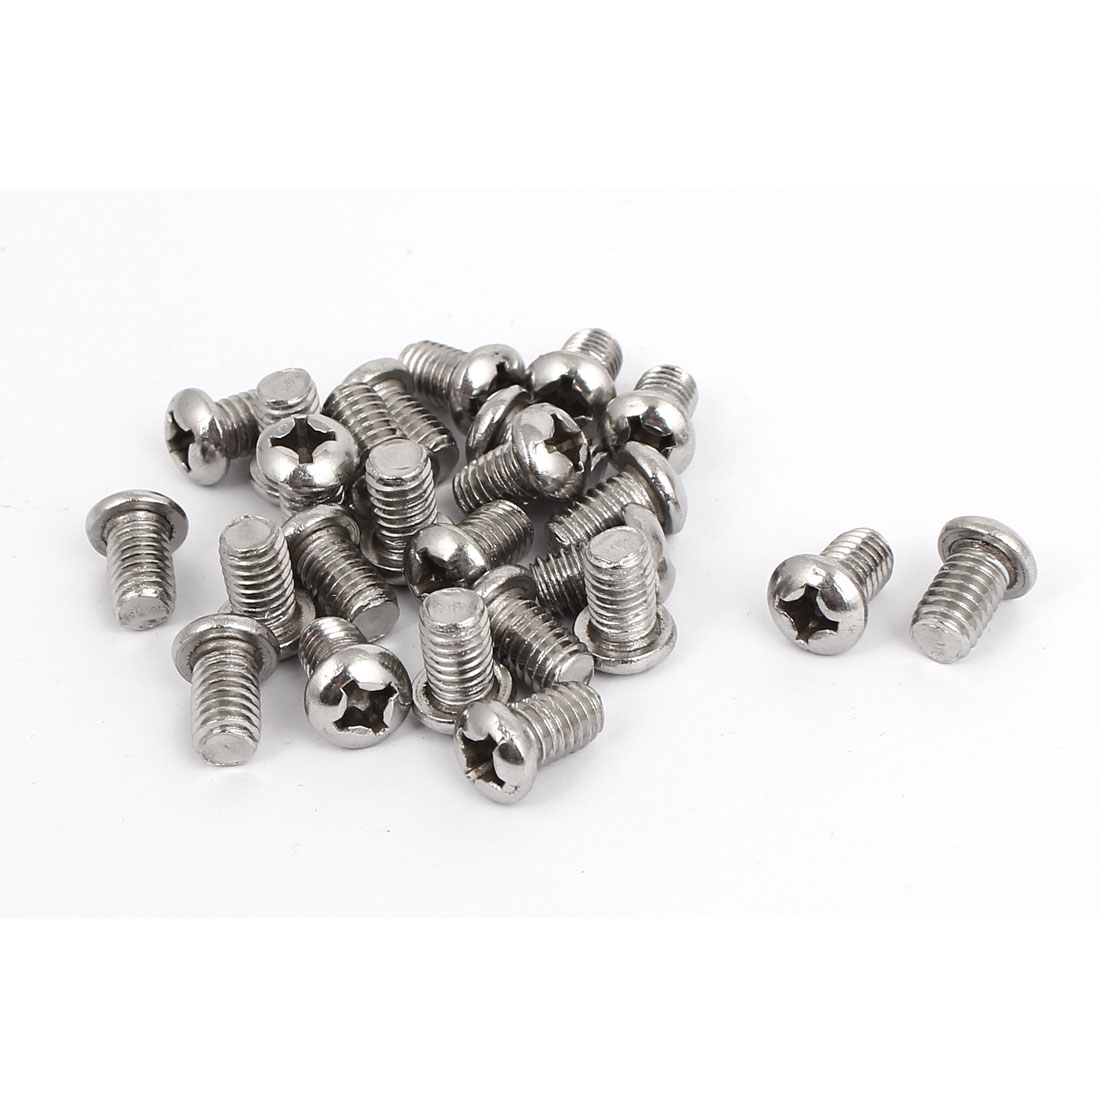 M6x10mm Stainless Steel Phillips Round Pan Head Machine Screws 25pcs